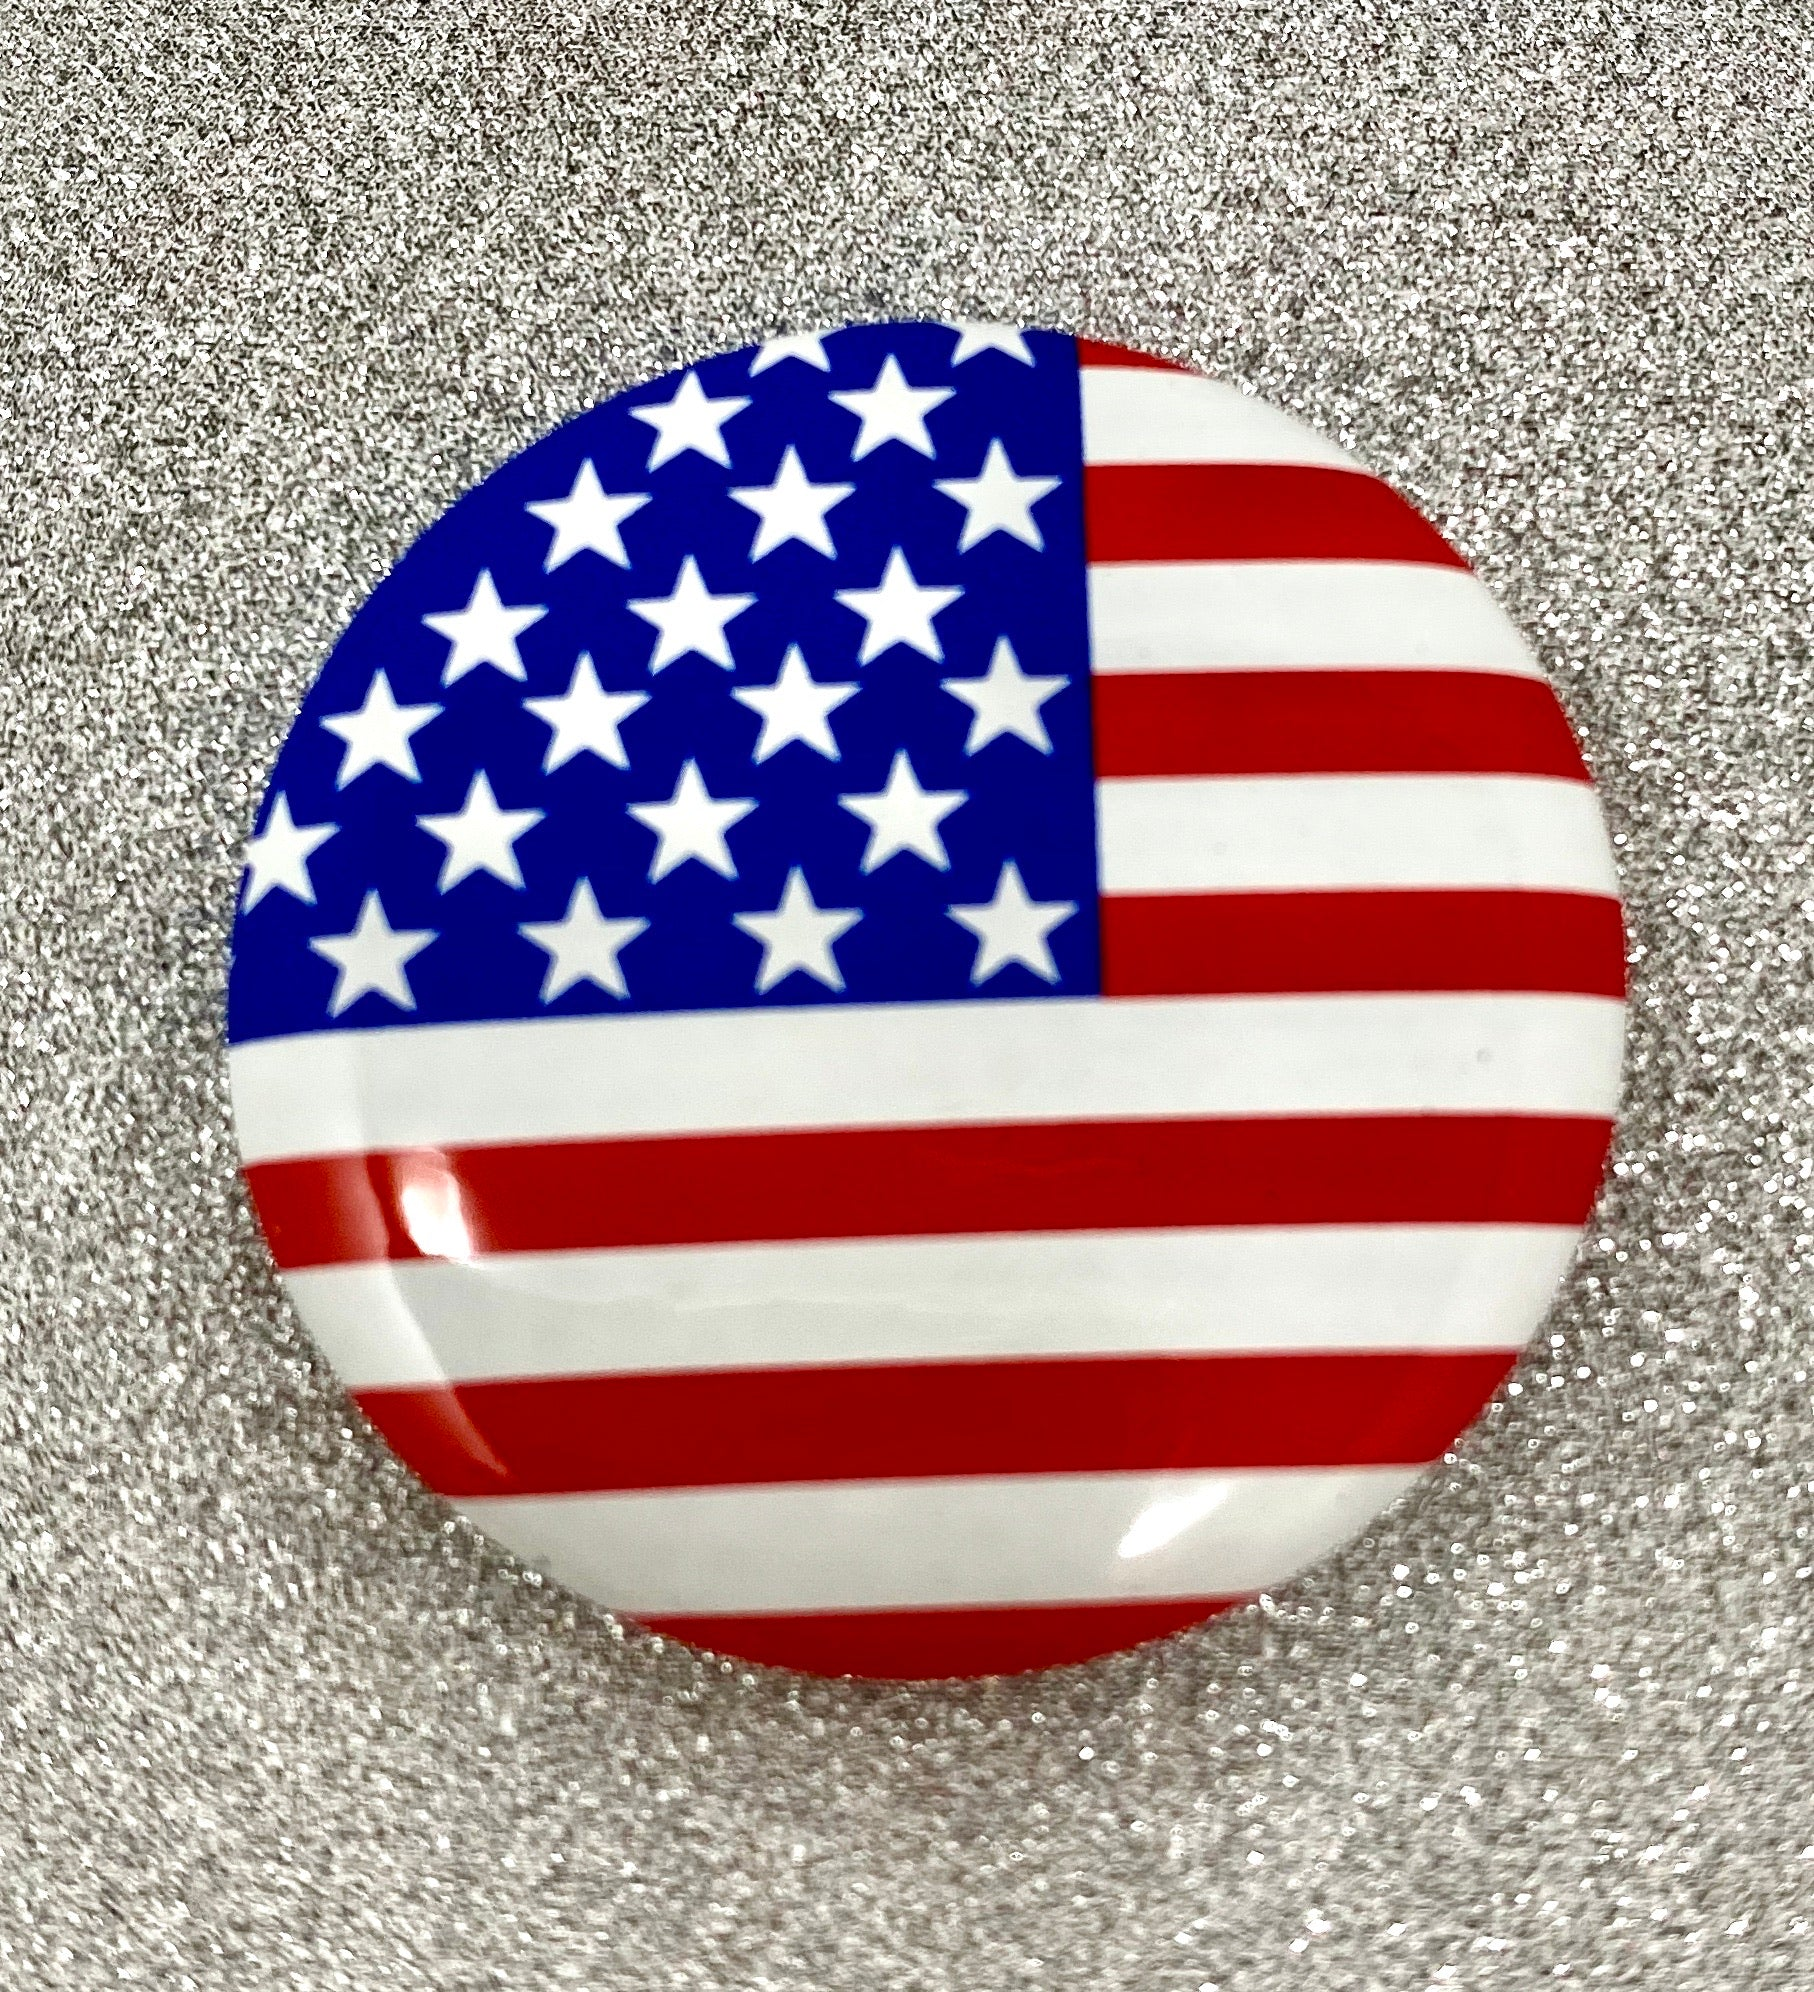 USA Flag Pins - Pin Back Buttons (Set of 12)